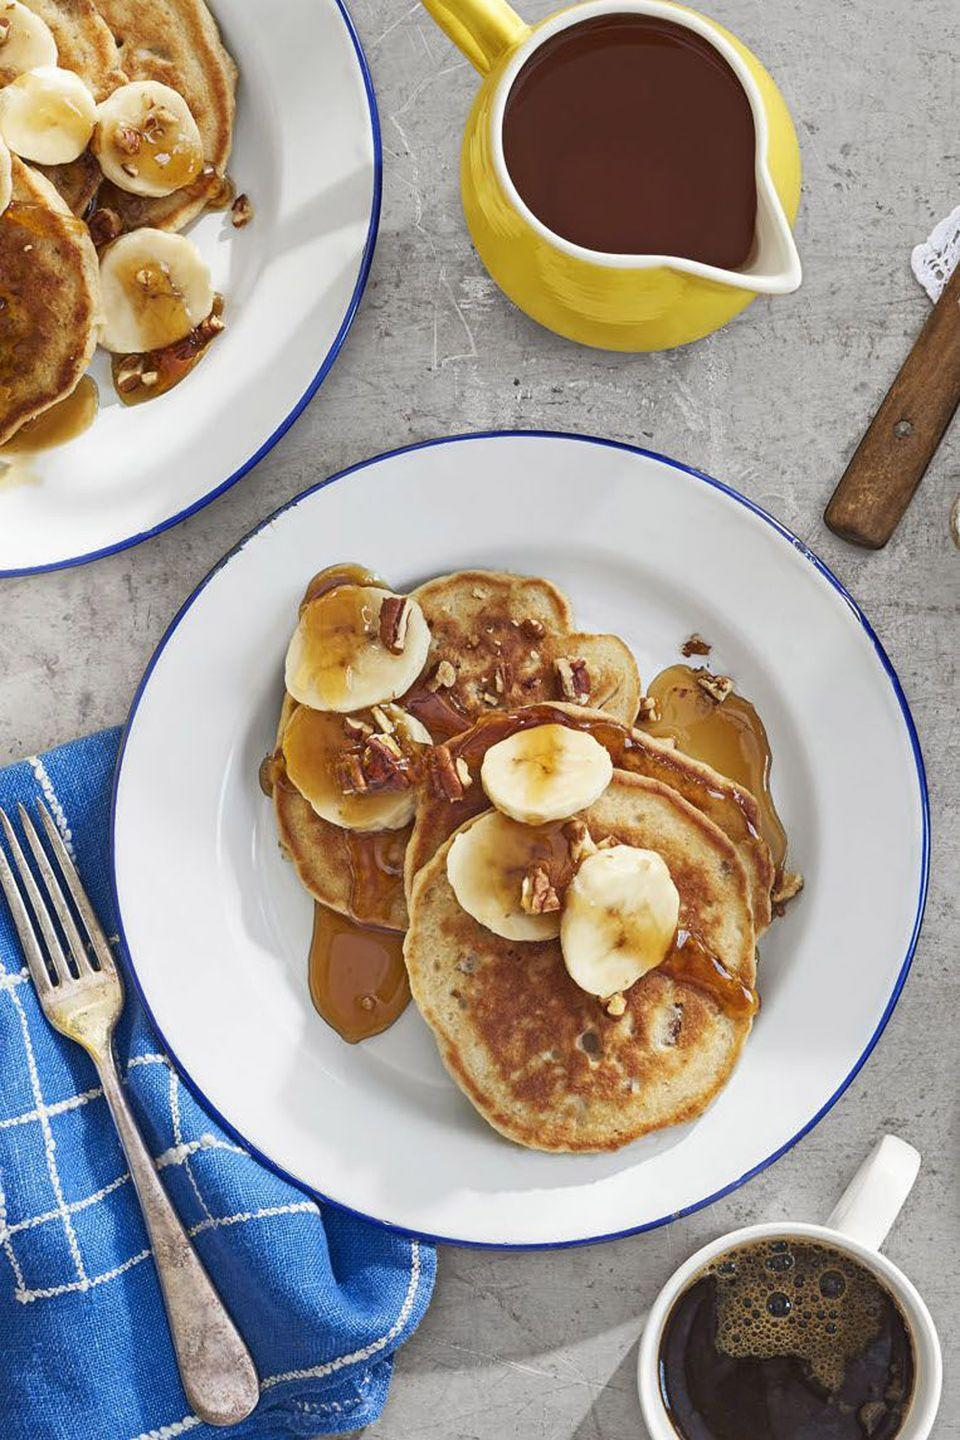 """<p>Toasted pecans give these banana-filled pancakes a sweet and satisfying crunch.</p><p><strong><a href=""""https://www.countryliving.com/food-drinks/recipes/a41653/banana-bread-flapjacks-recipe/"""" rel=""""nofollow noopener"""" target=""""_blank"""" data-ylk=""""slk:Get the recipe"""" class=""""link rapid-noclick-resp"""">Get the recipe</a>.</strong> </p>"""